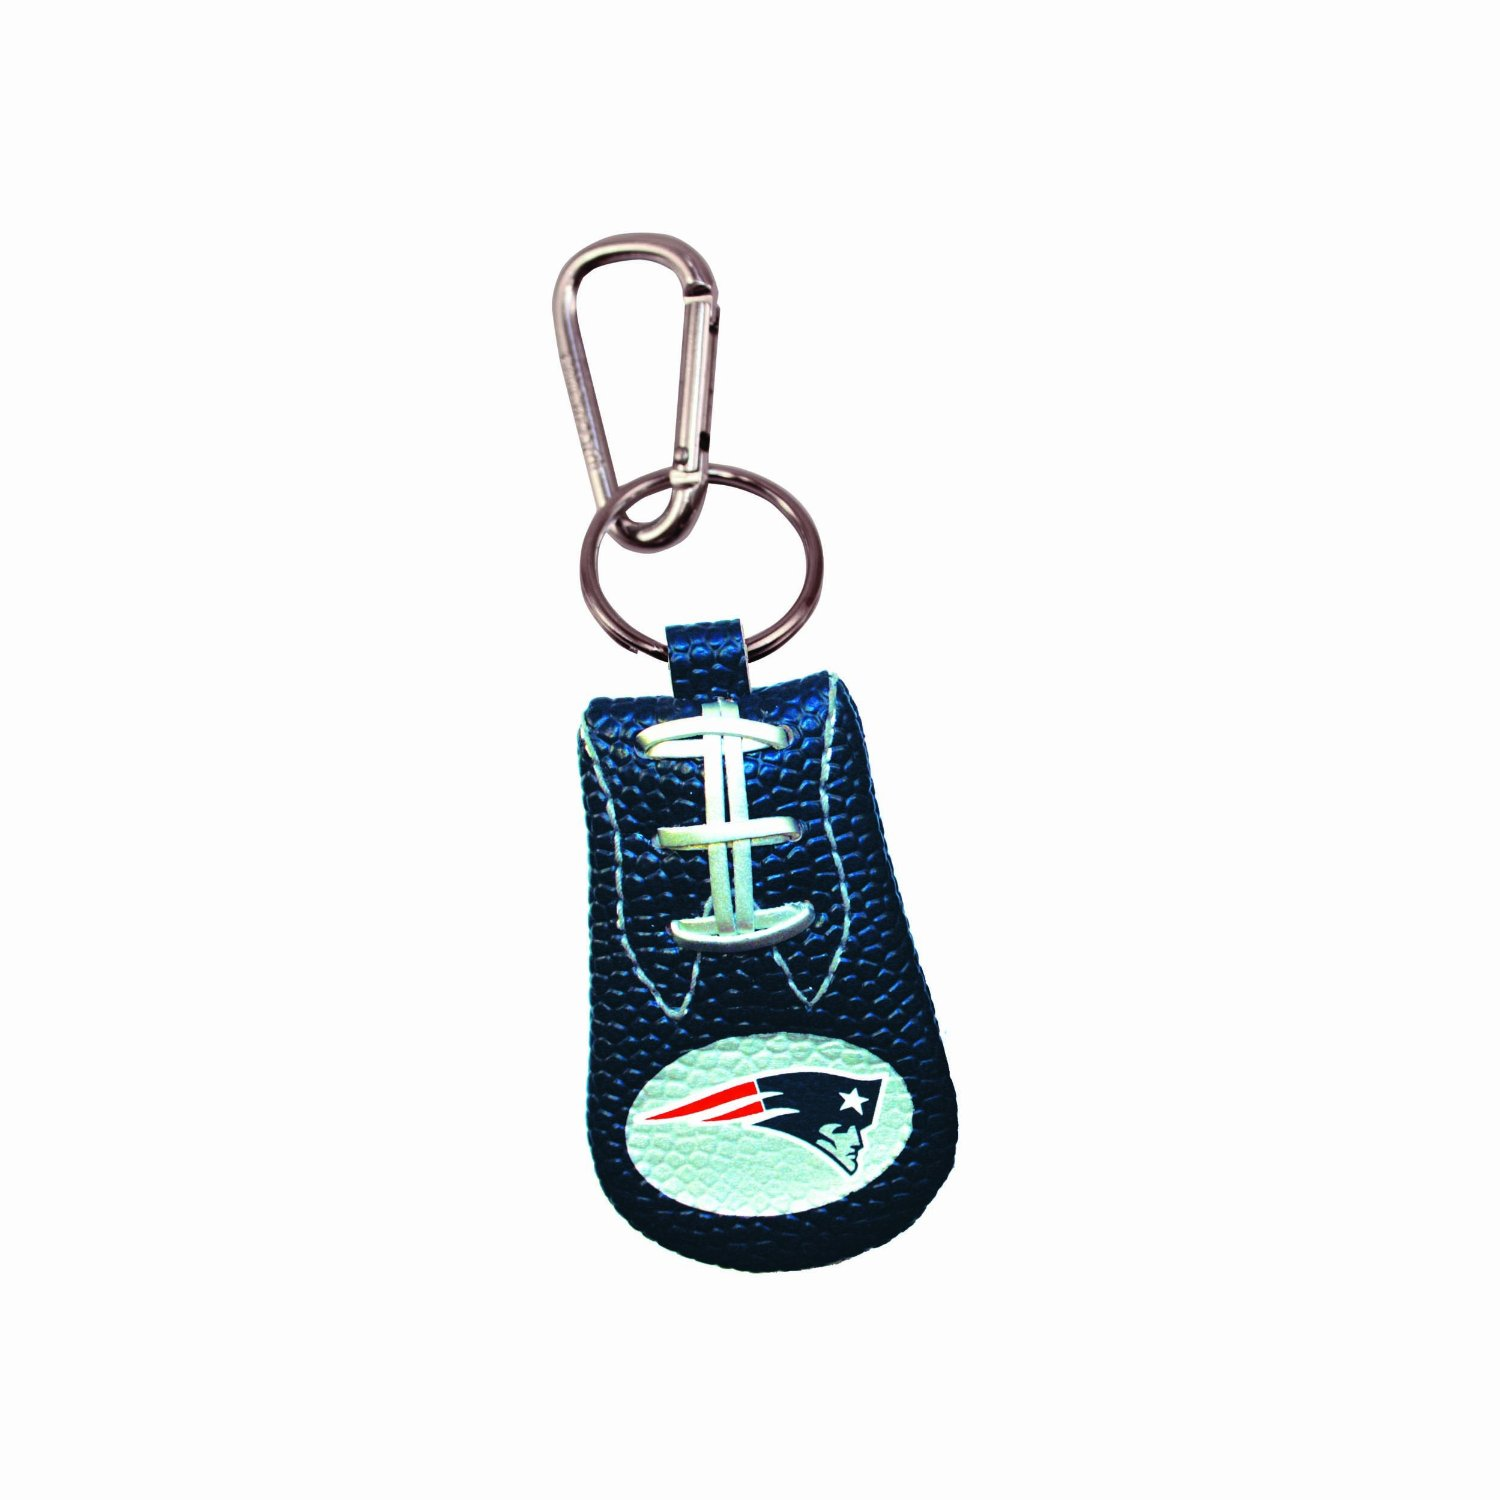 72559b270 Get Quotations · New England Patriots Team Color NFL Football Keychain